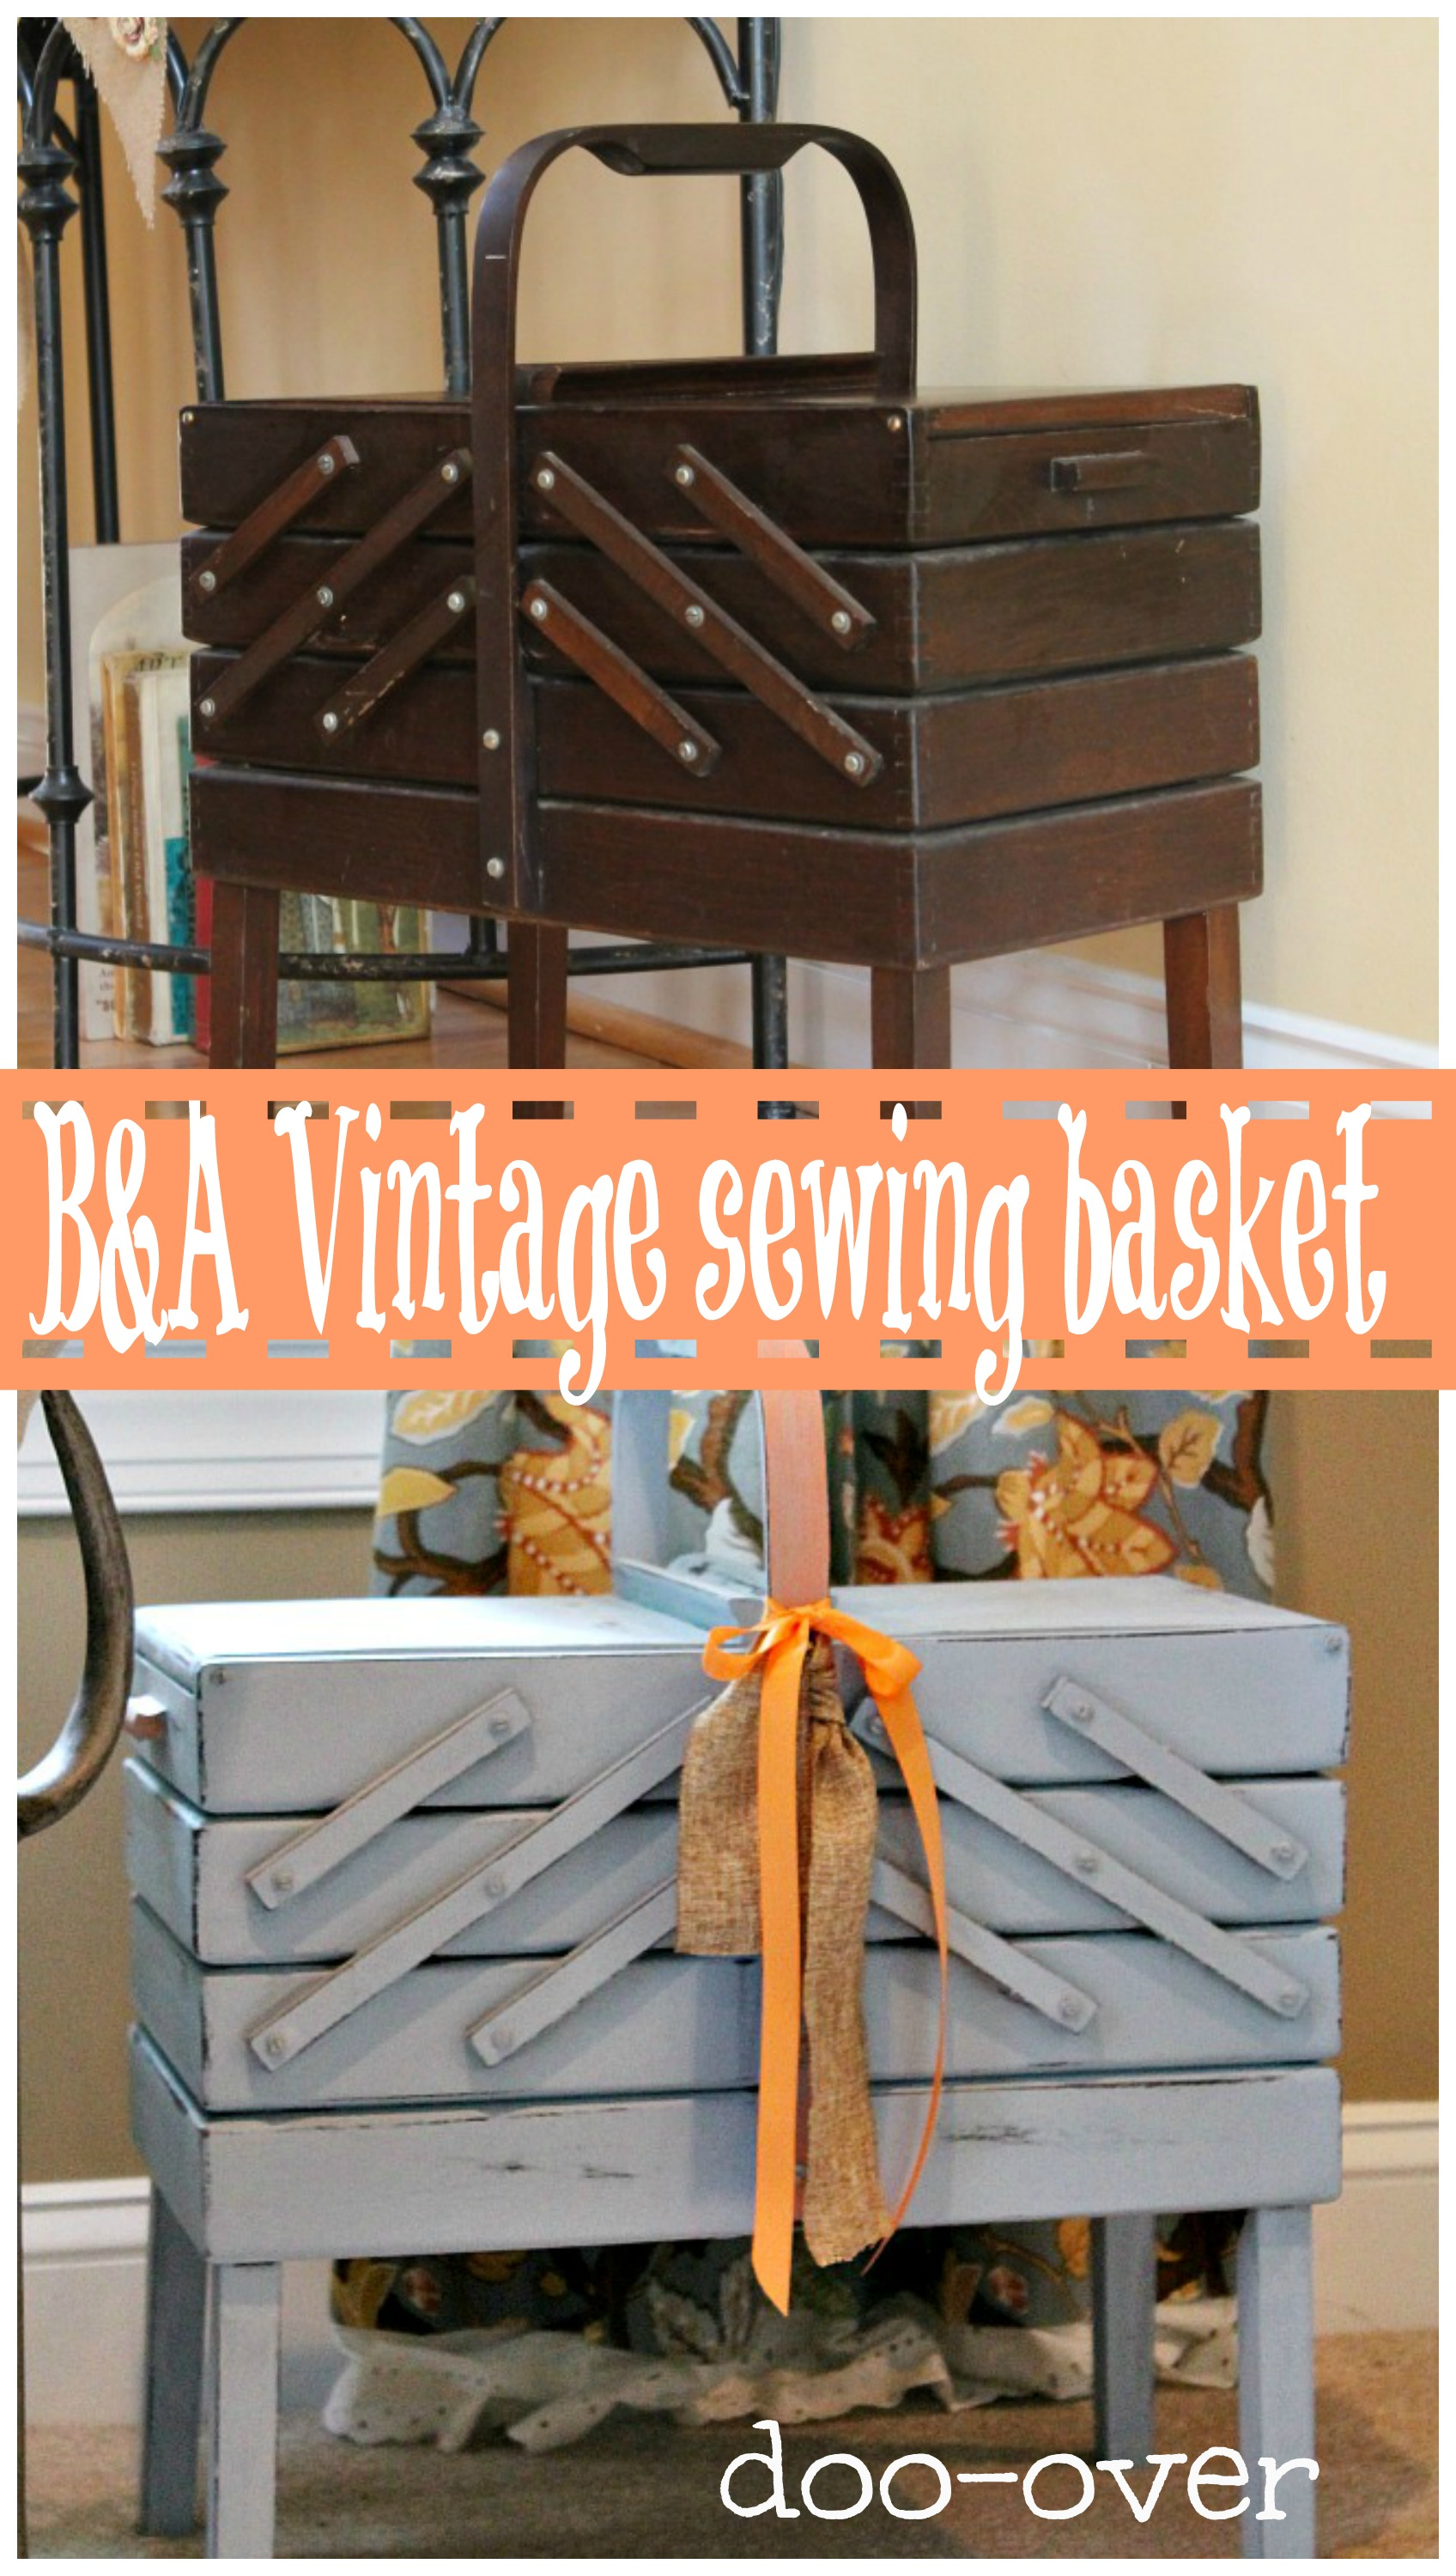 Before and after vintage sewing basket